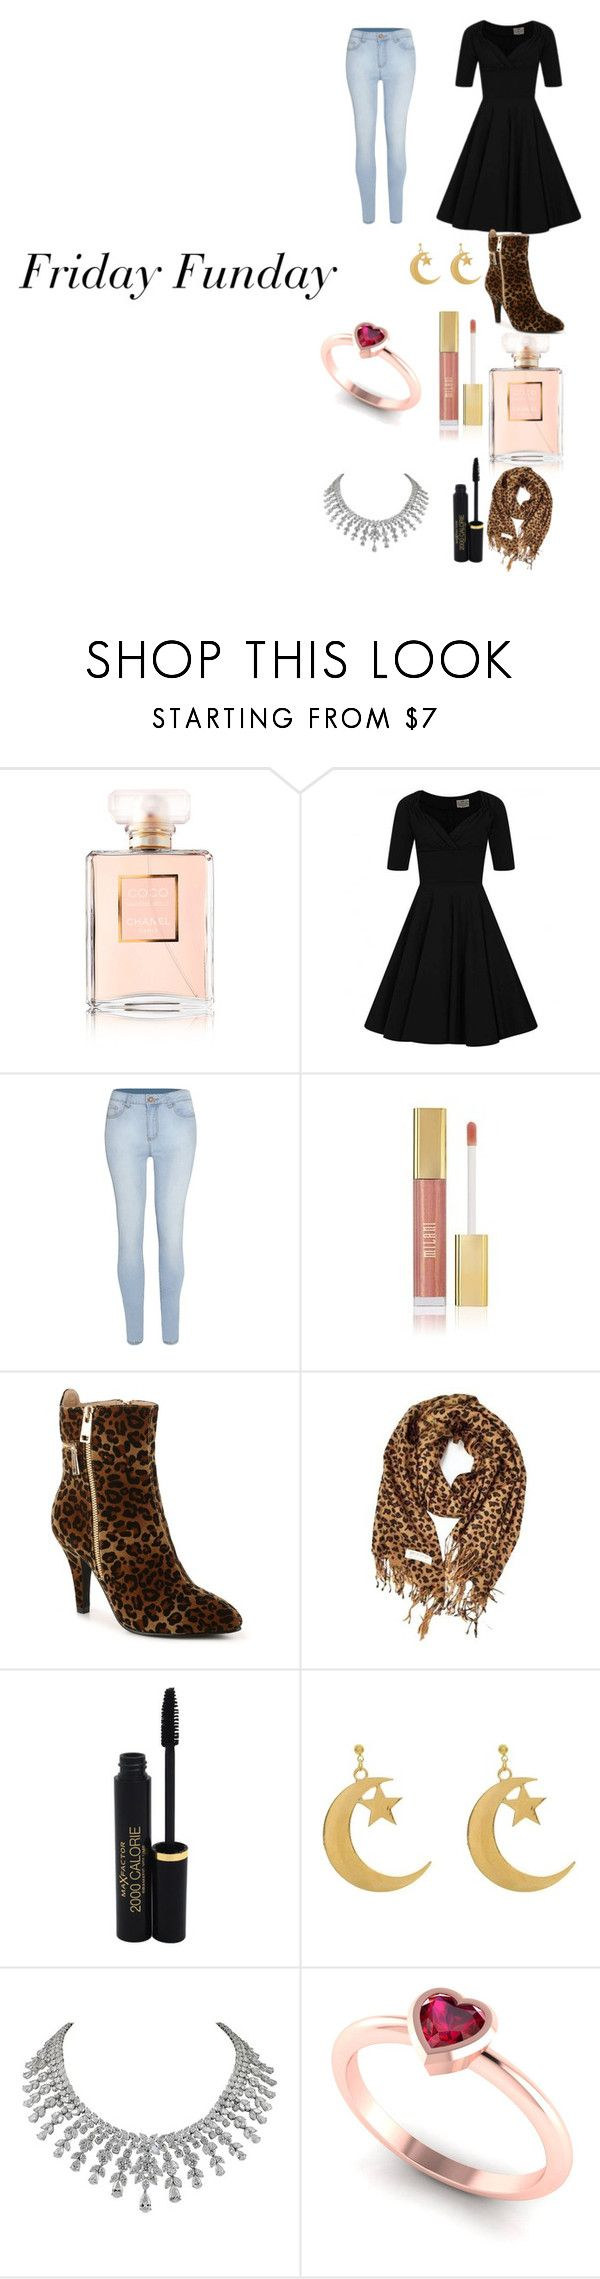 """Friday Funday"" by katiephan on Polyvore featuring Chanel, Collectif, Maybelline, Bellini, Max Factor, friday and november2017"